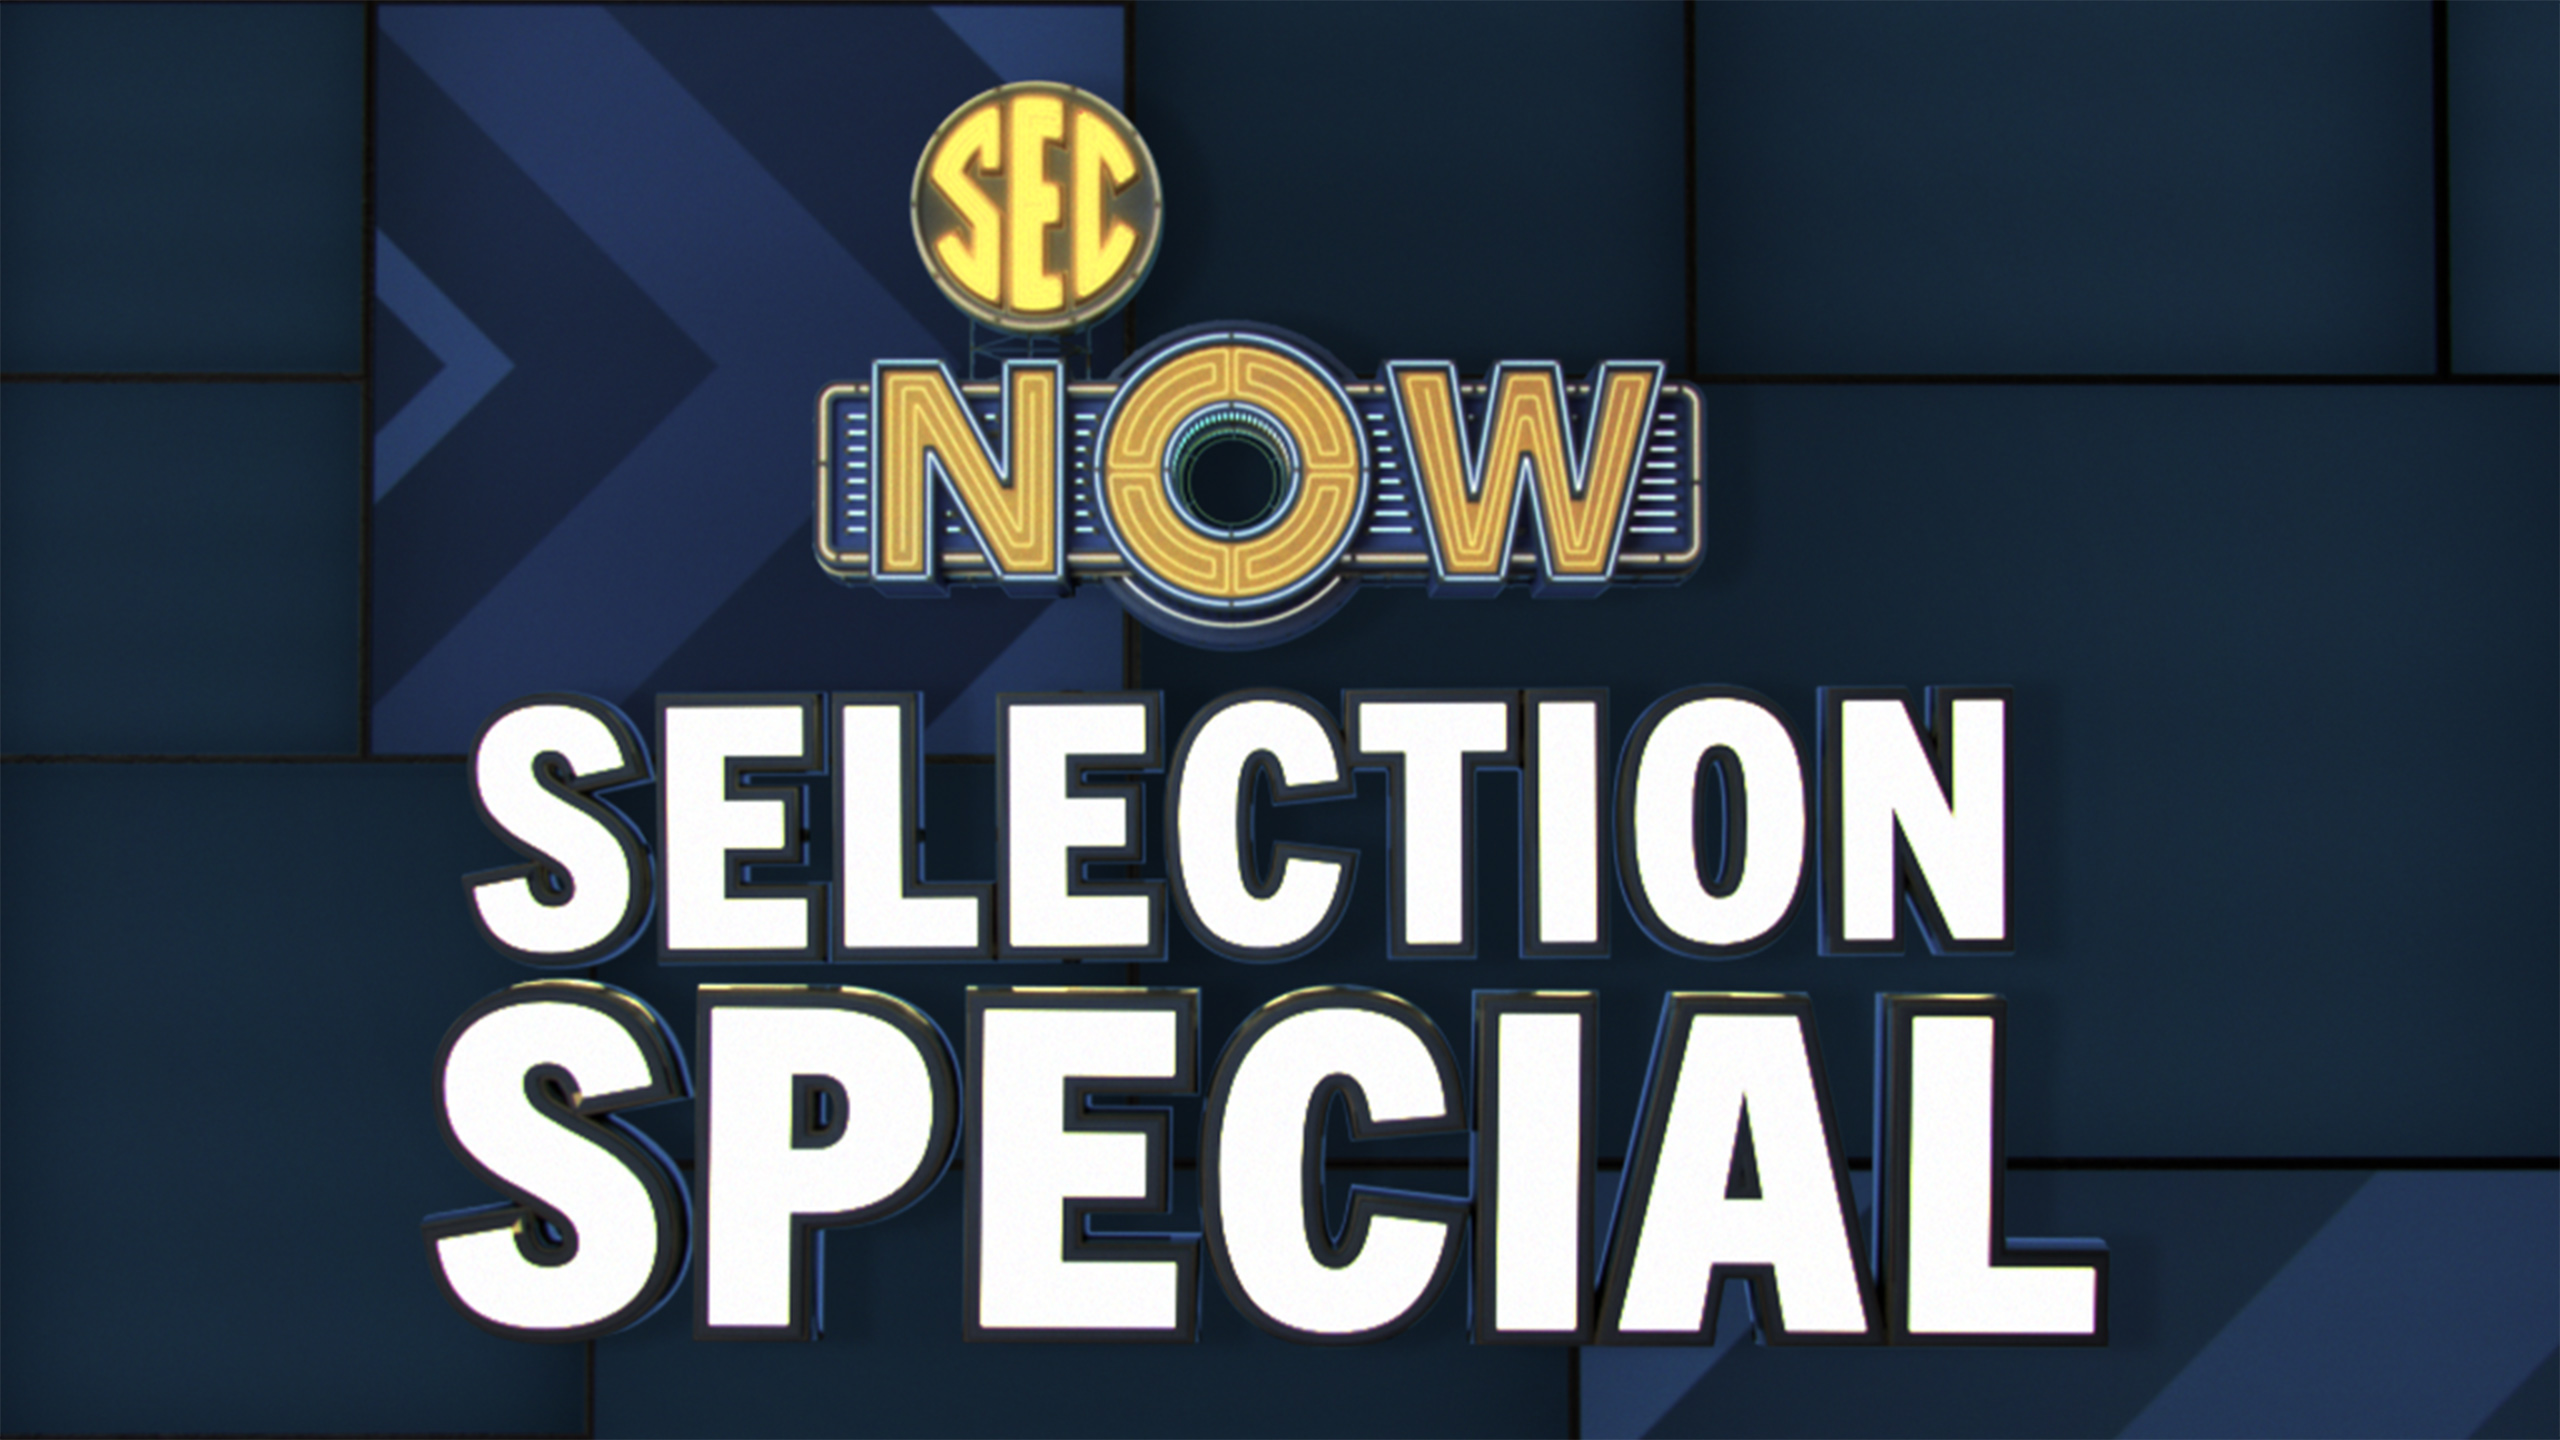 SEC Now: Selection Special